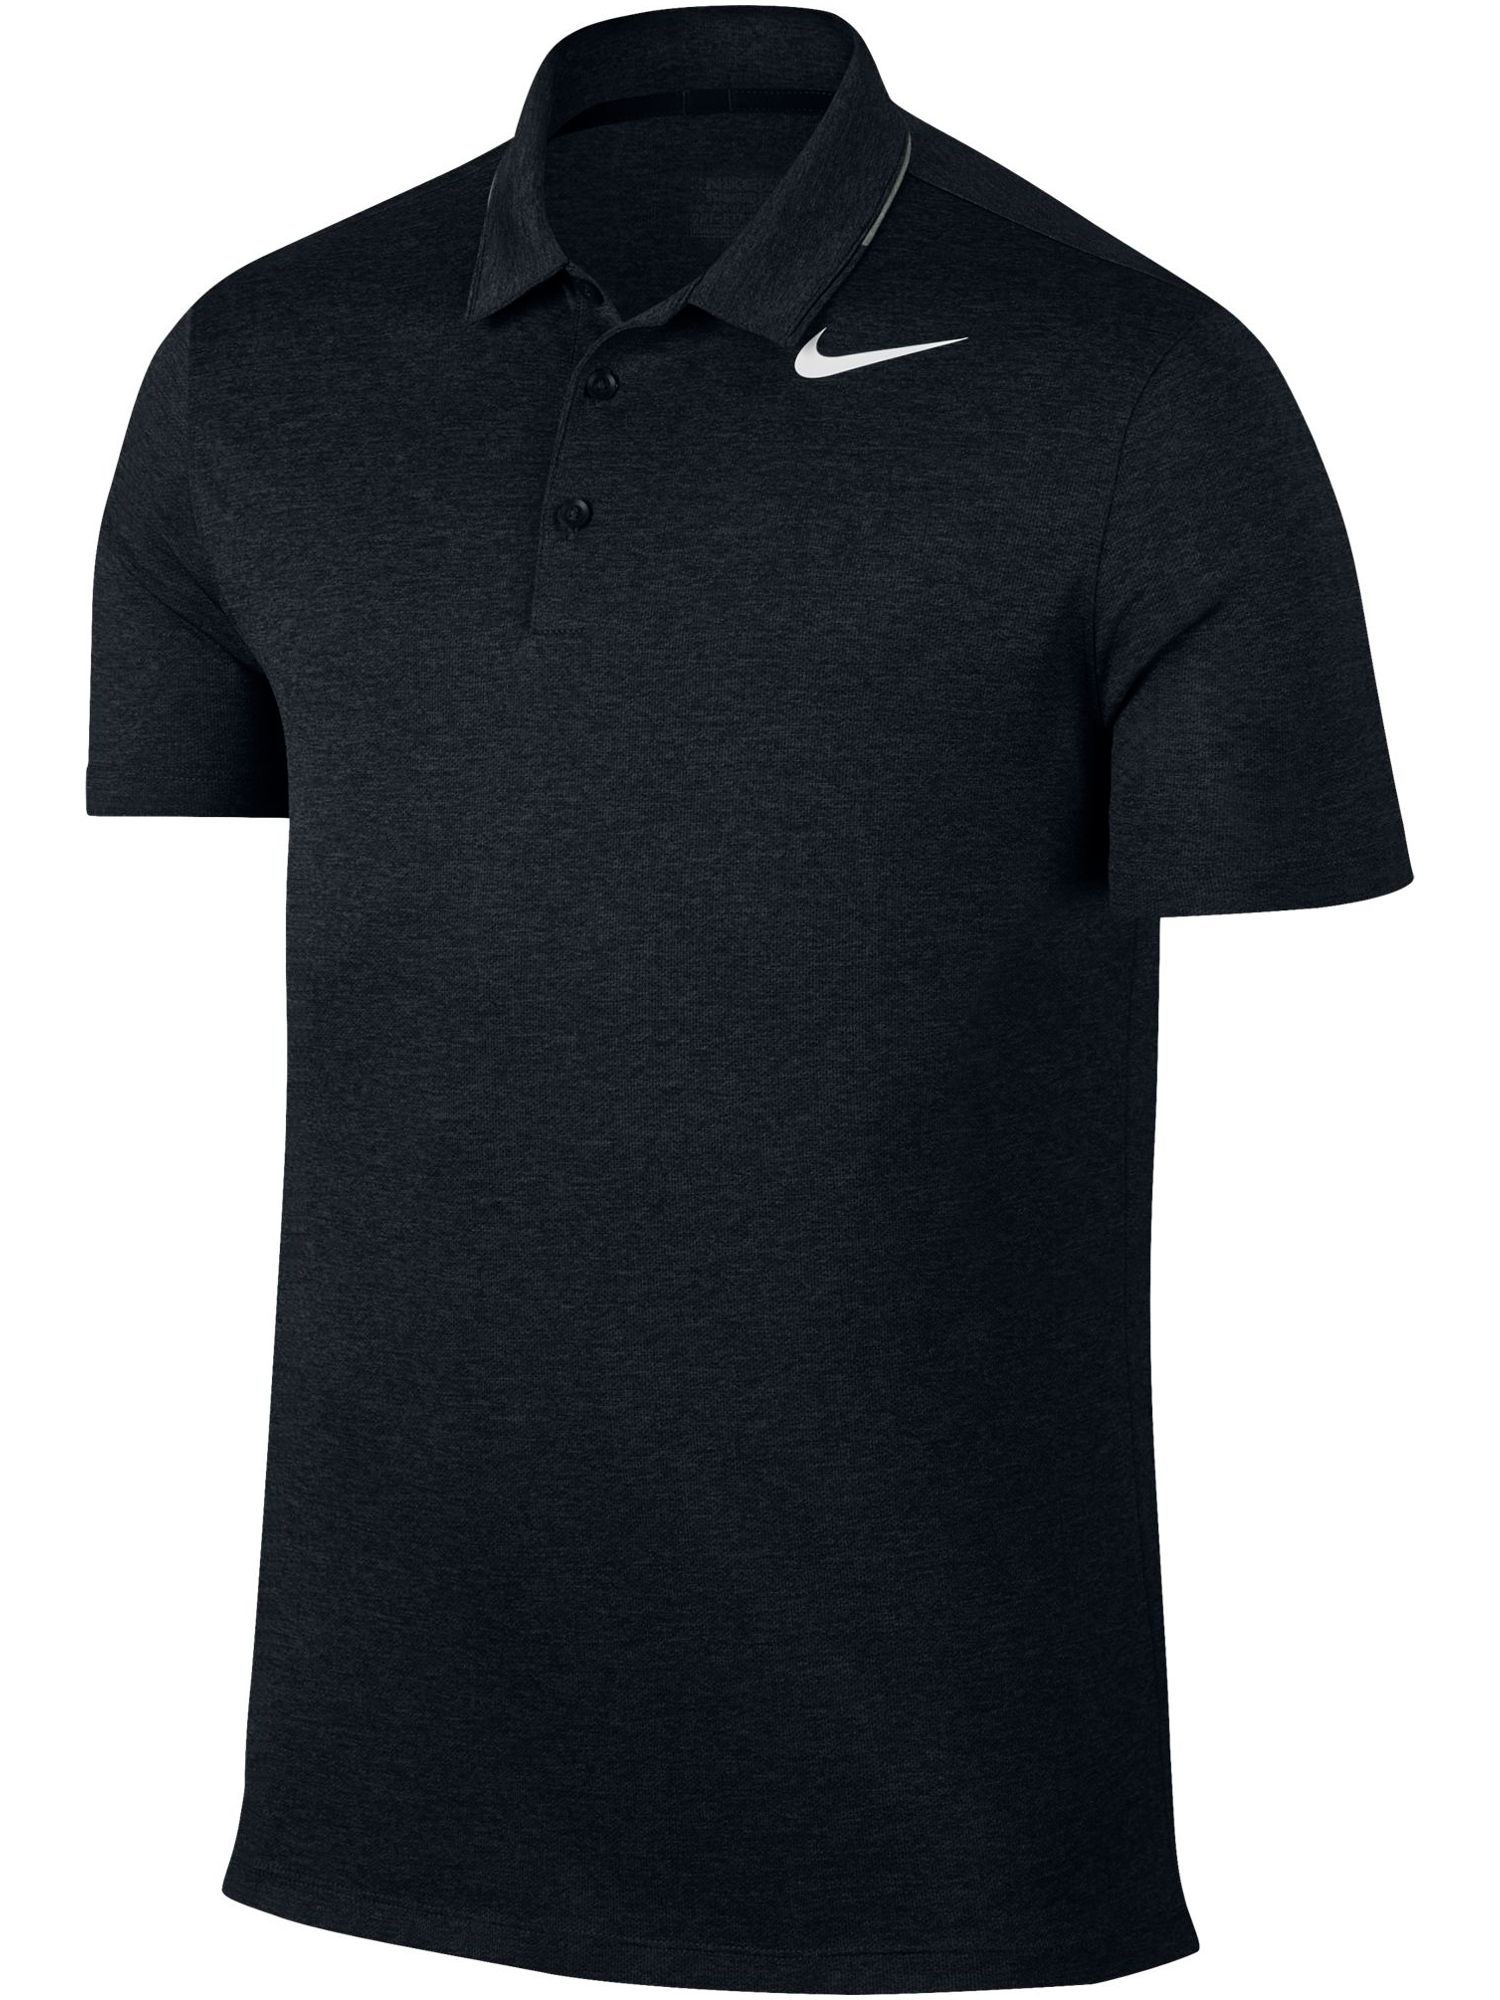 Men's Nike Breathe Heather Polo, Black